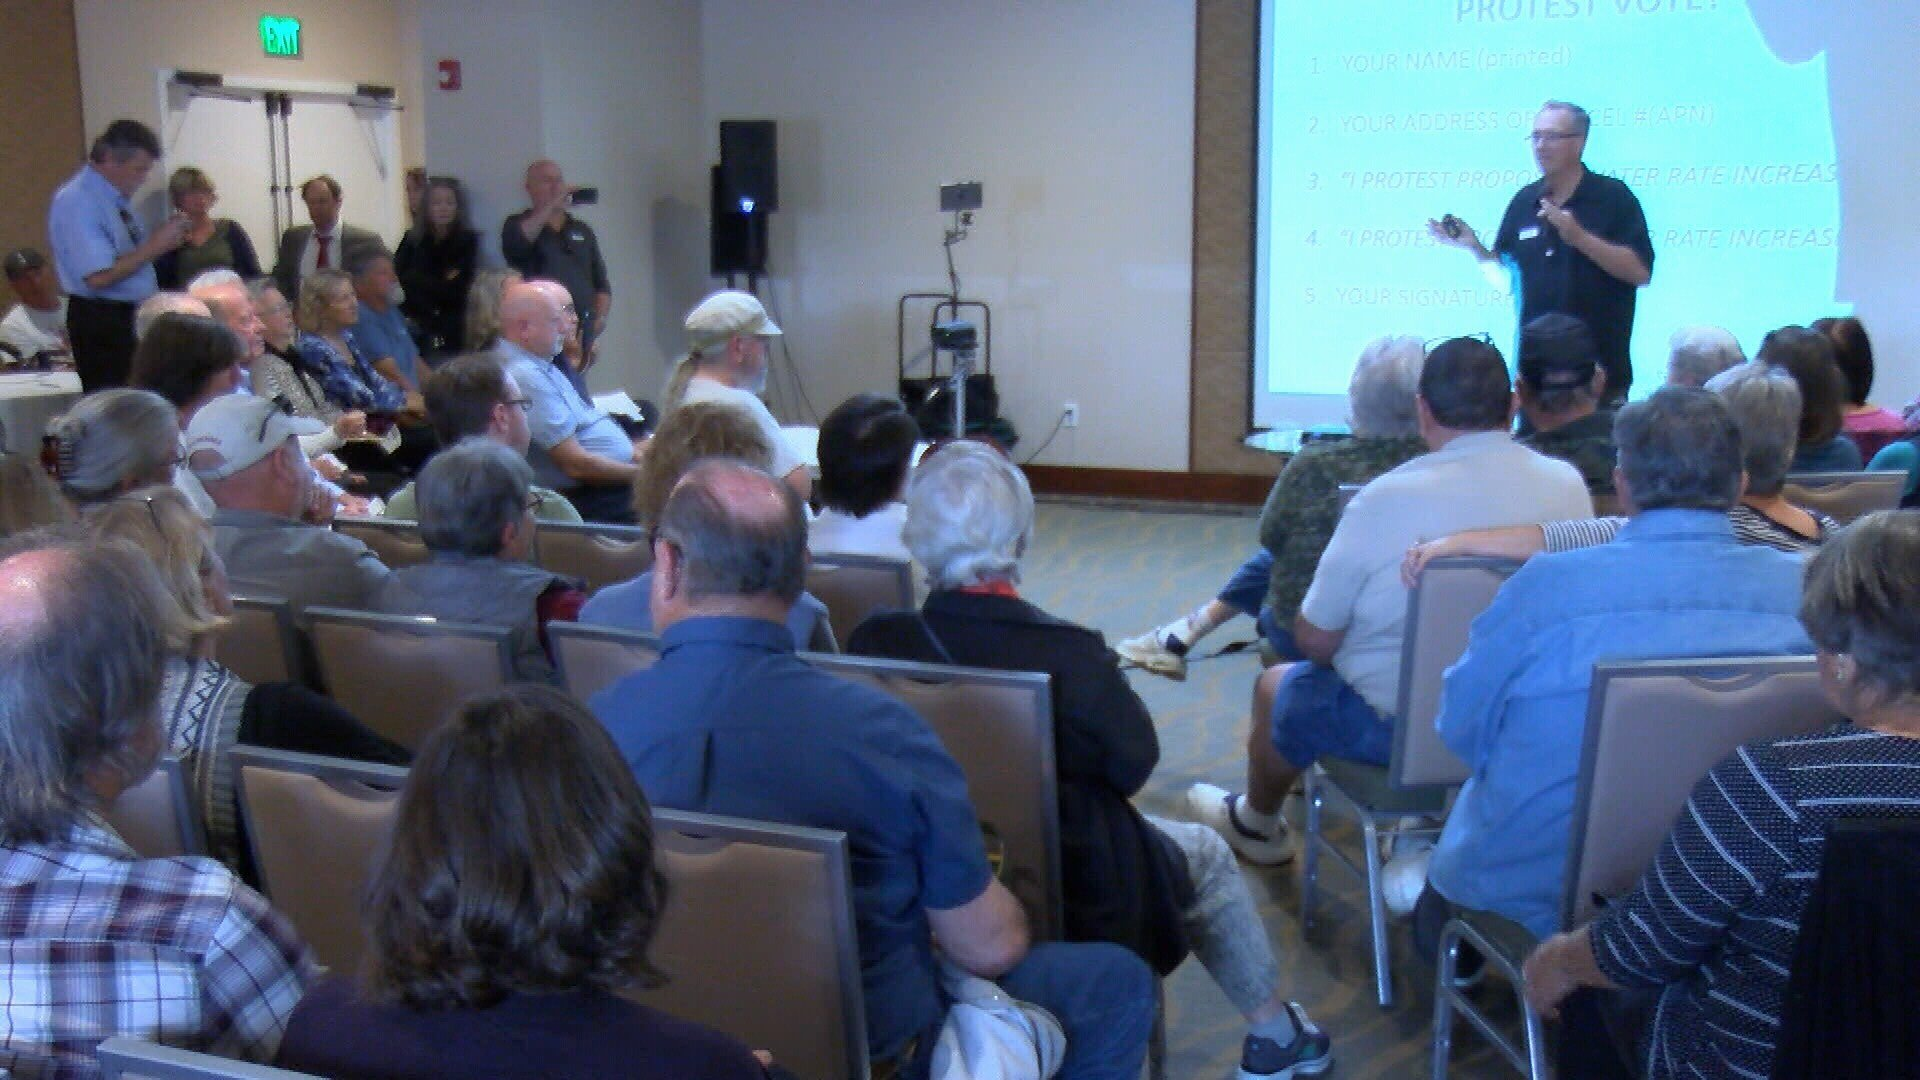 Residents gather to protest the Morro Bay city plans for a new sewer treatment facility project. (KSBY photo)